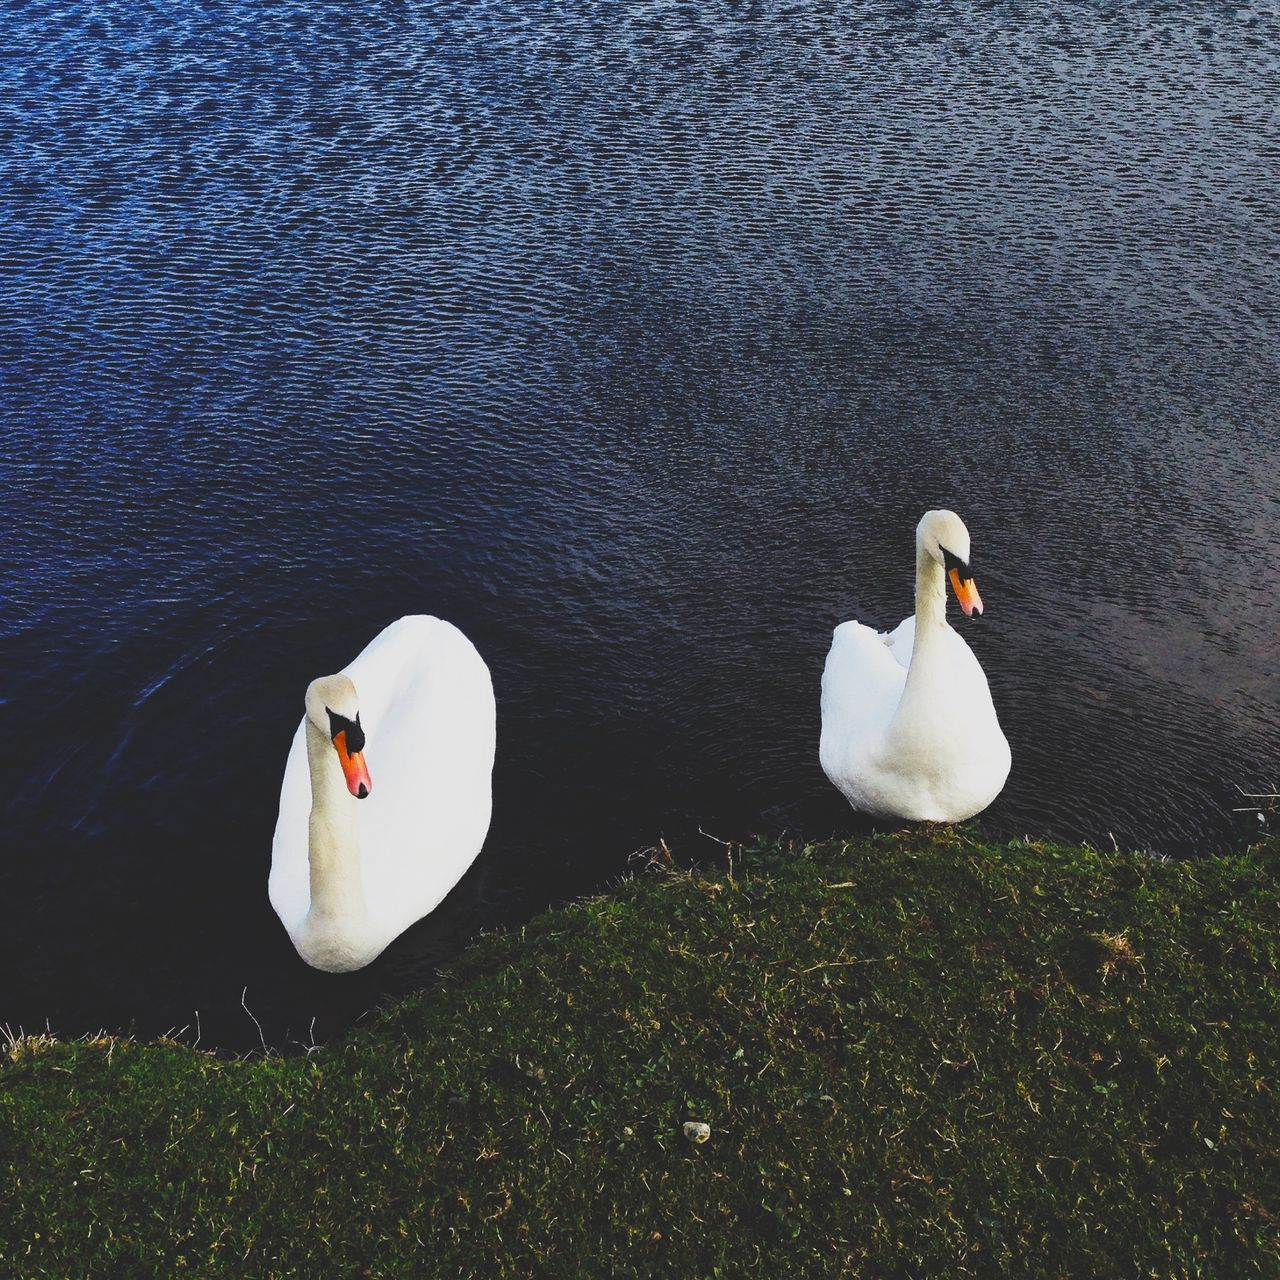 High angle view of two swans in calm water